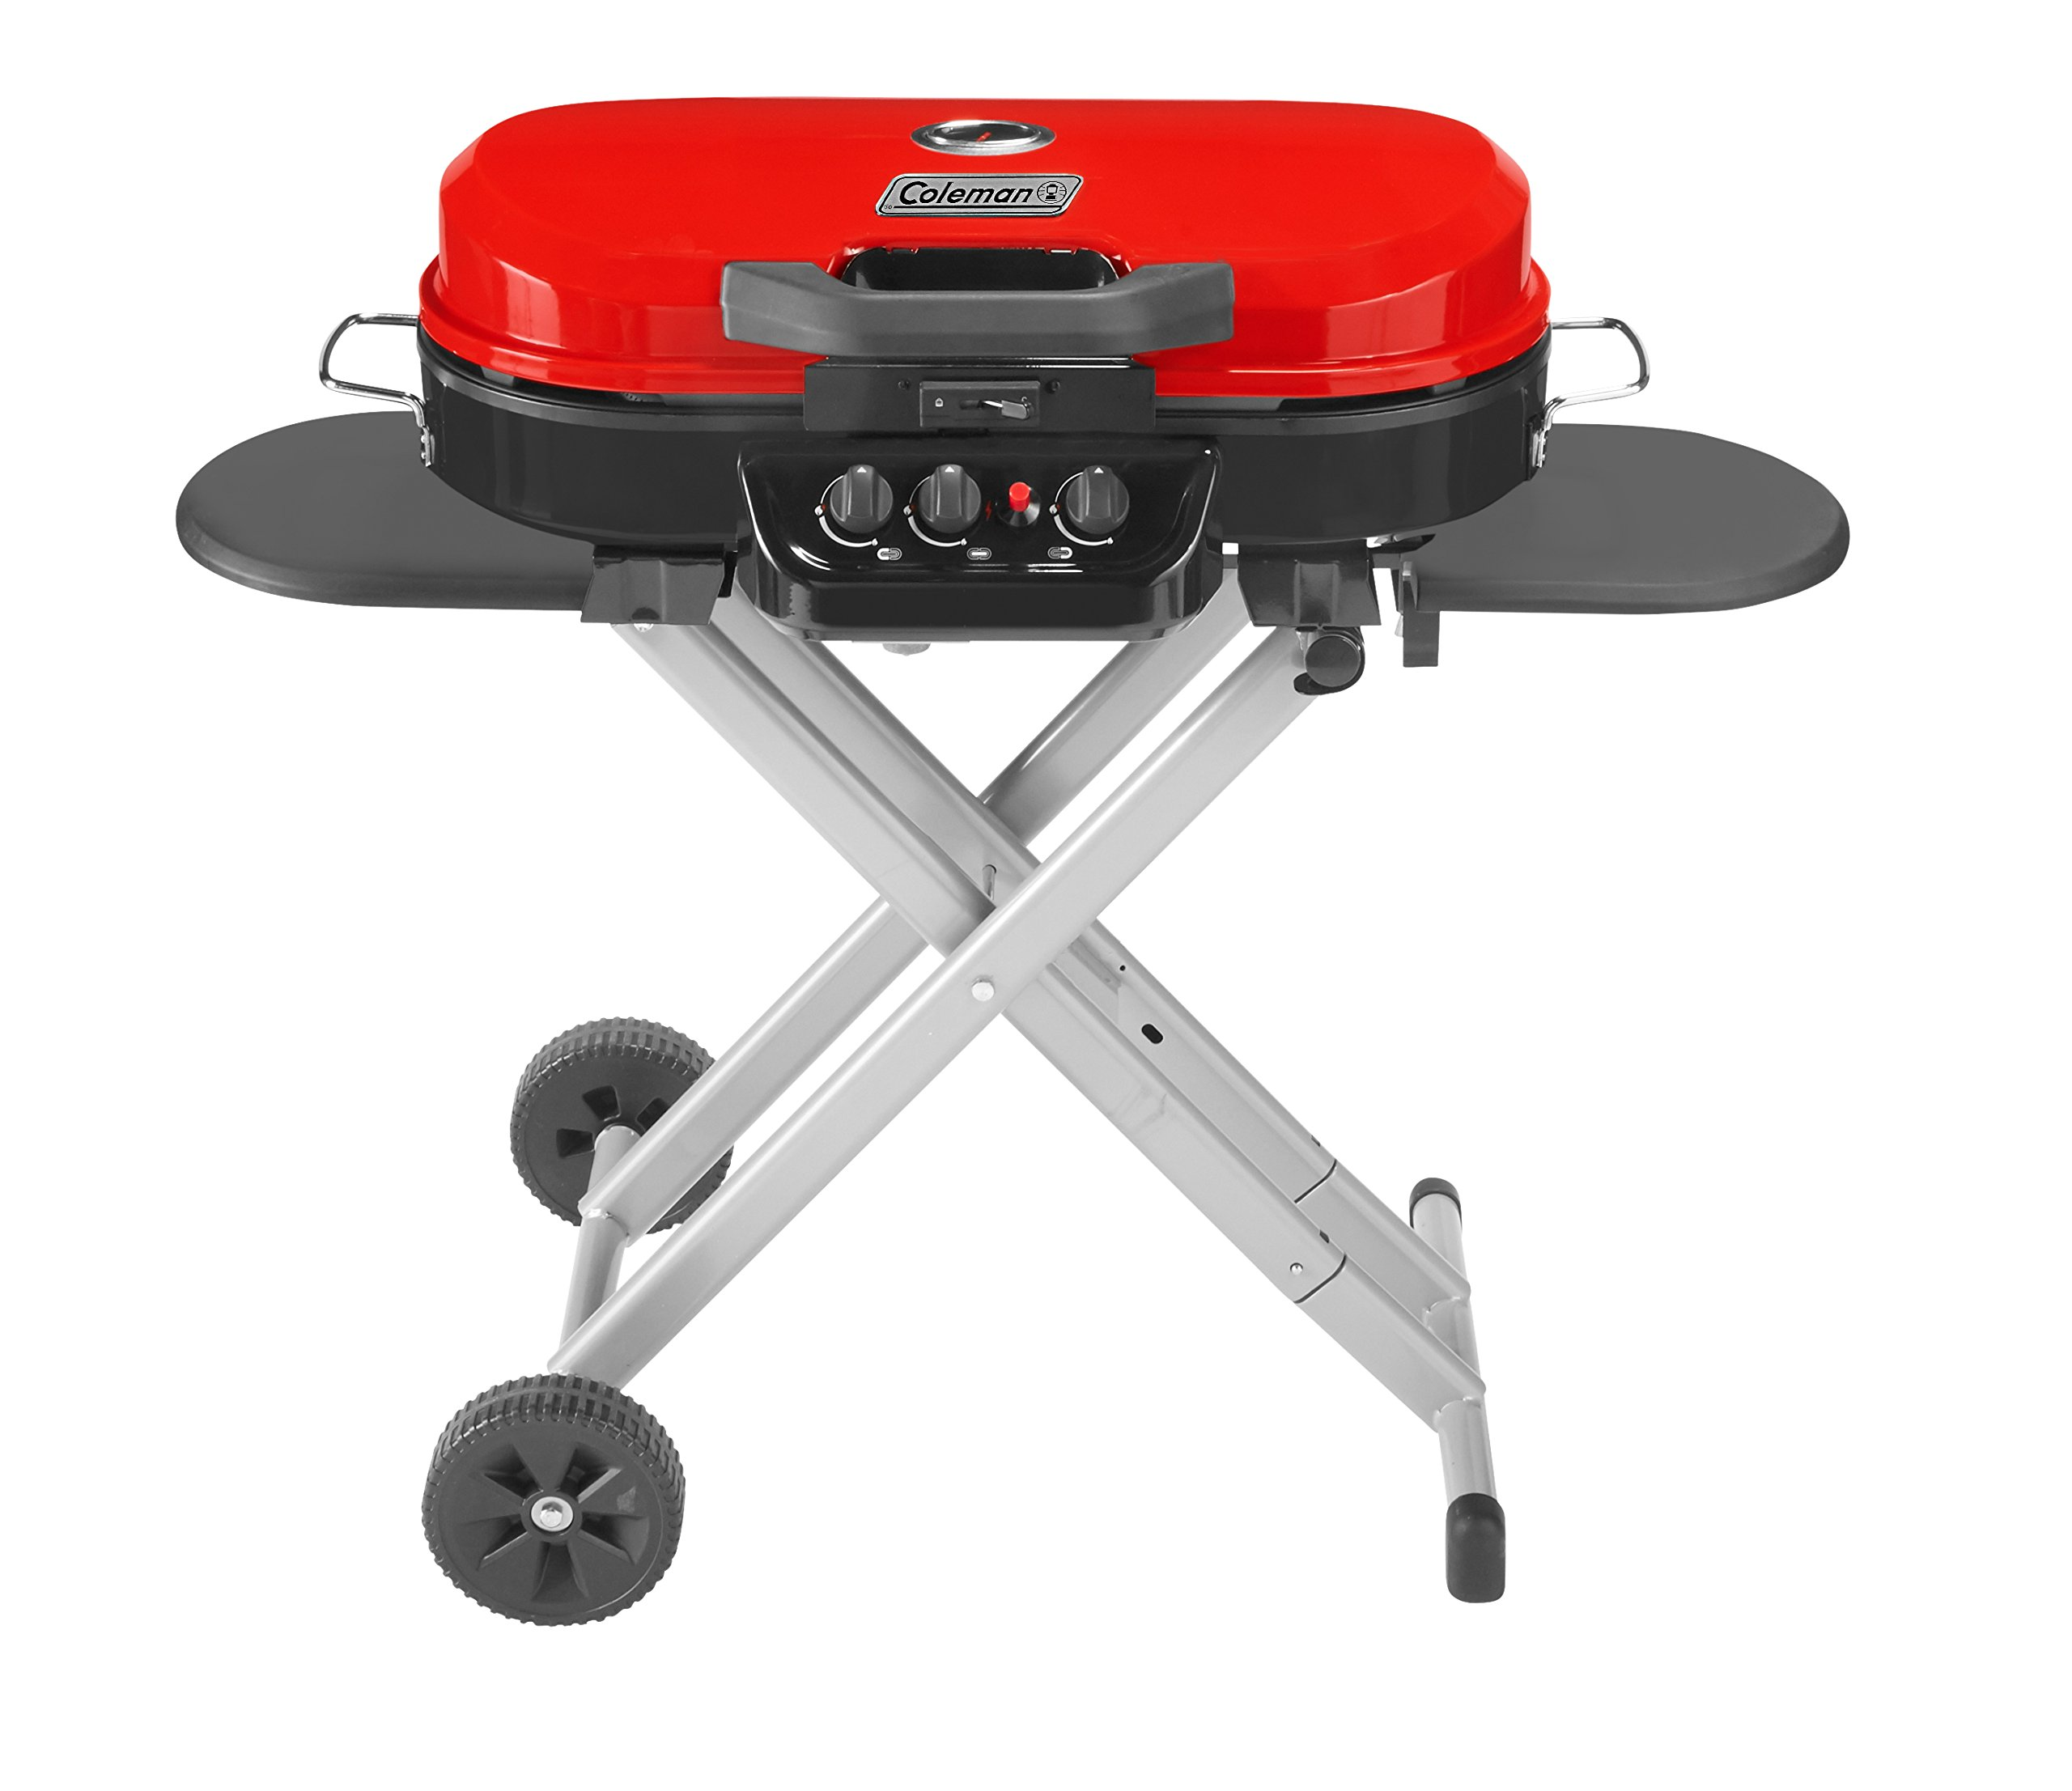 Coleman RoadTrip 285 Portable Stand-Up Propane Grill, Red by Coleman